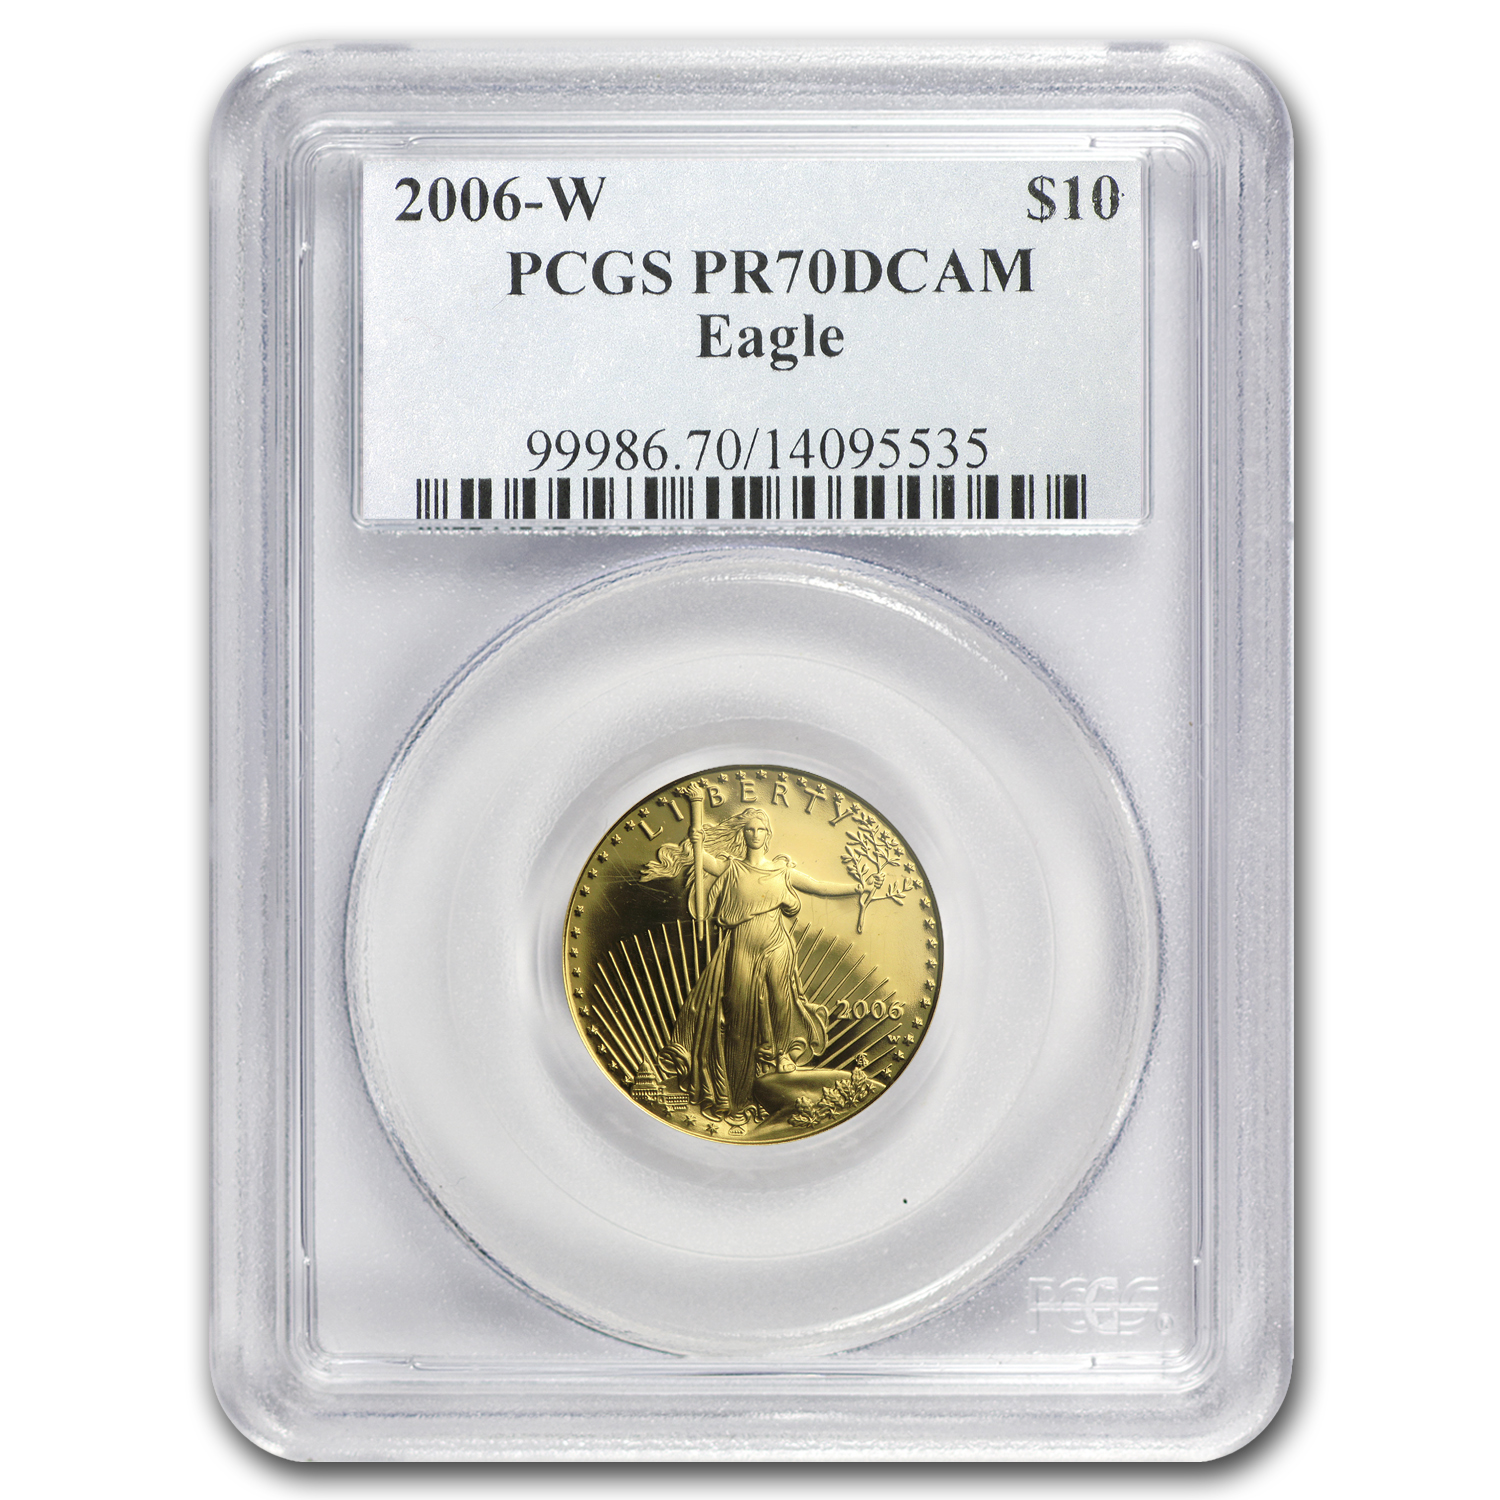 2006-W 1/4 oz Proof Gold American Eagle PR-70 PCGS